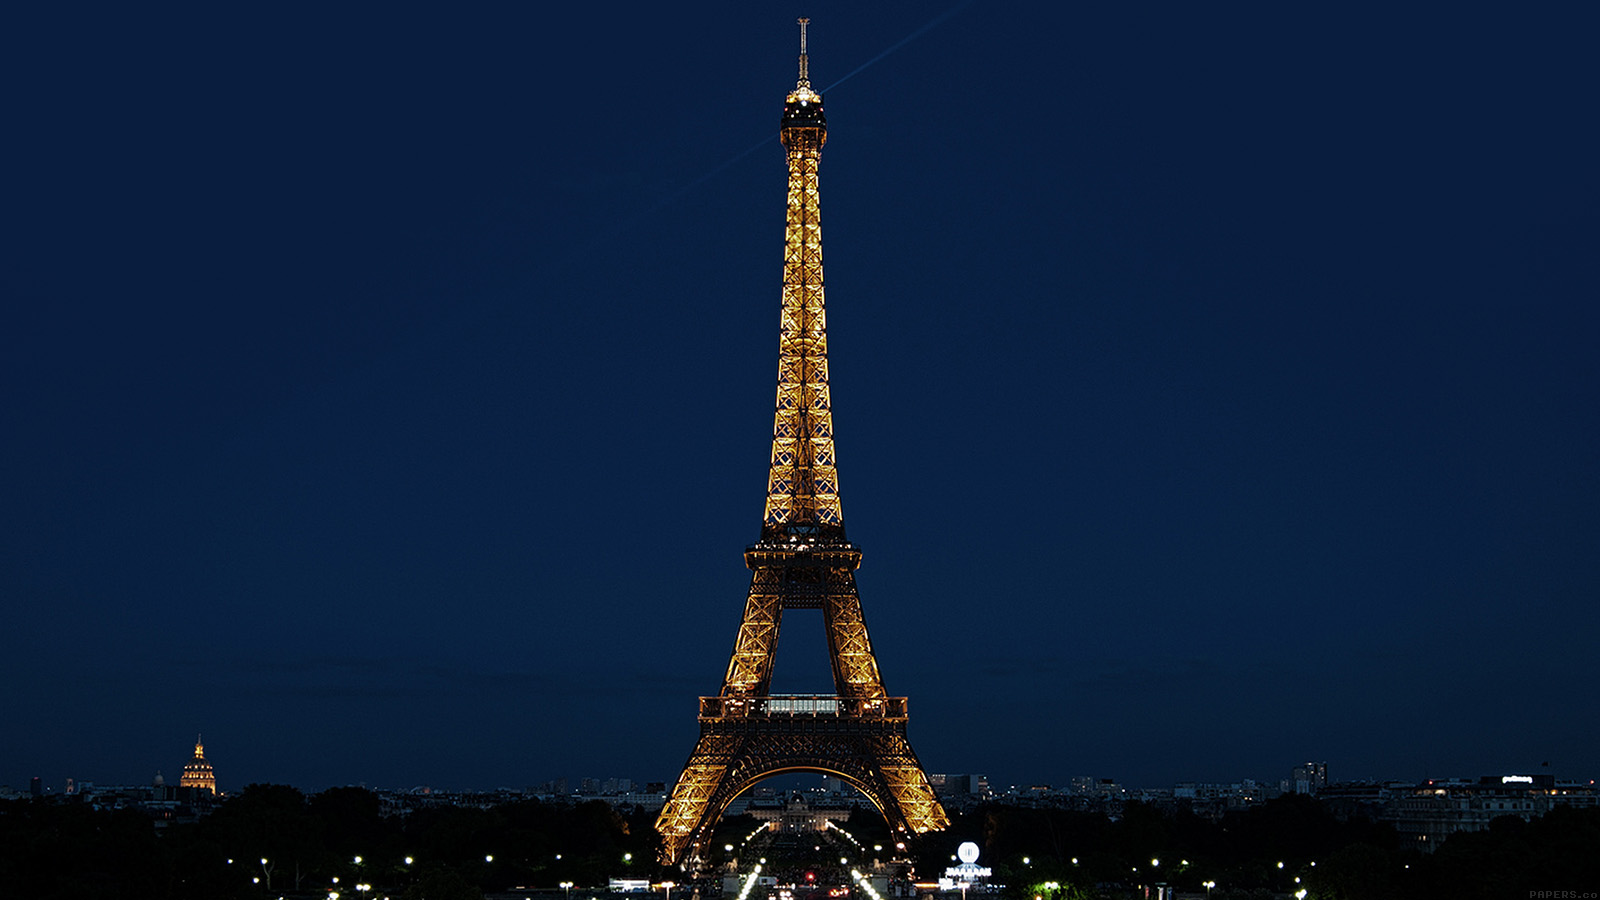 Fall Flower Wallpaper Desktop Ml77 Paris Night France City Eiffel Tower Papers Co